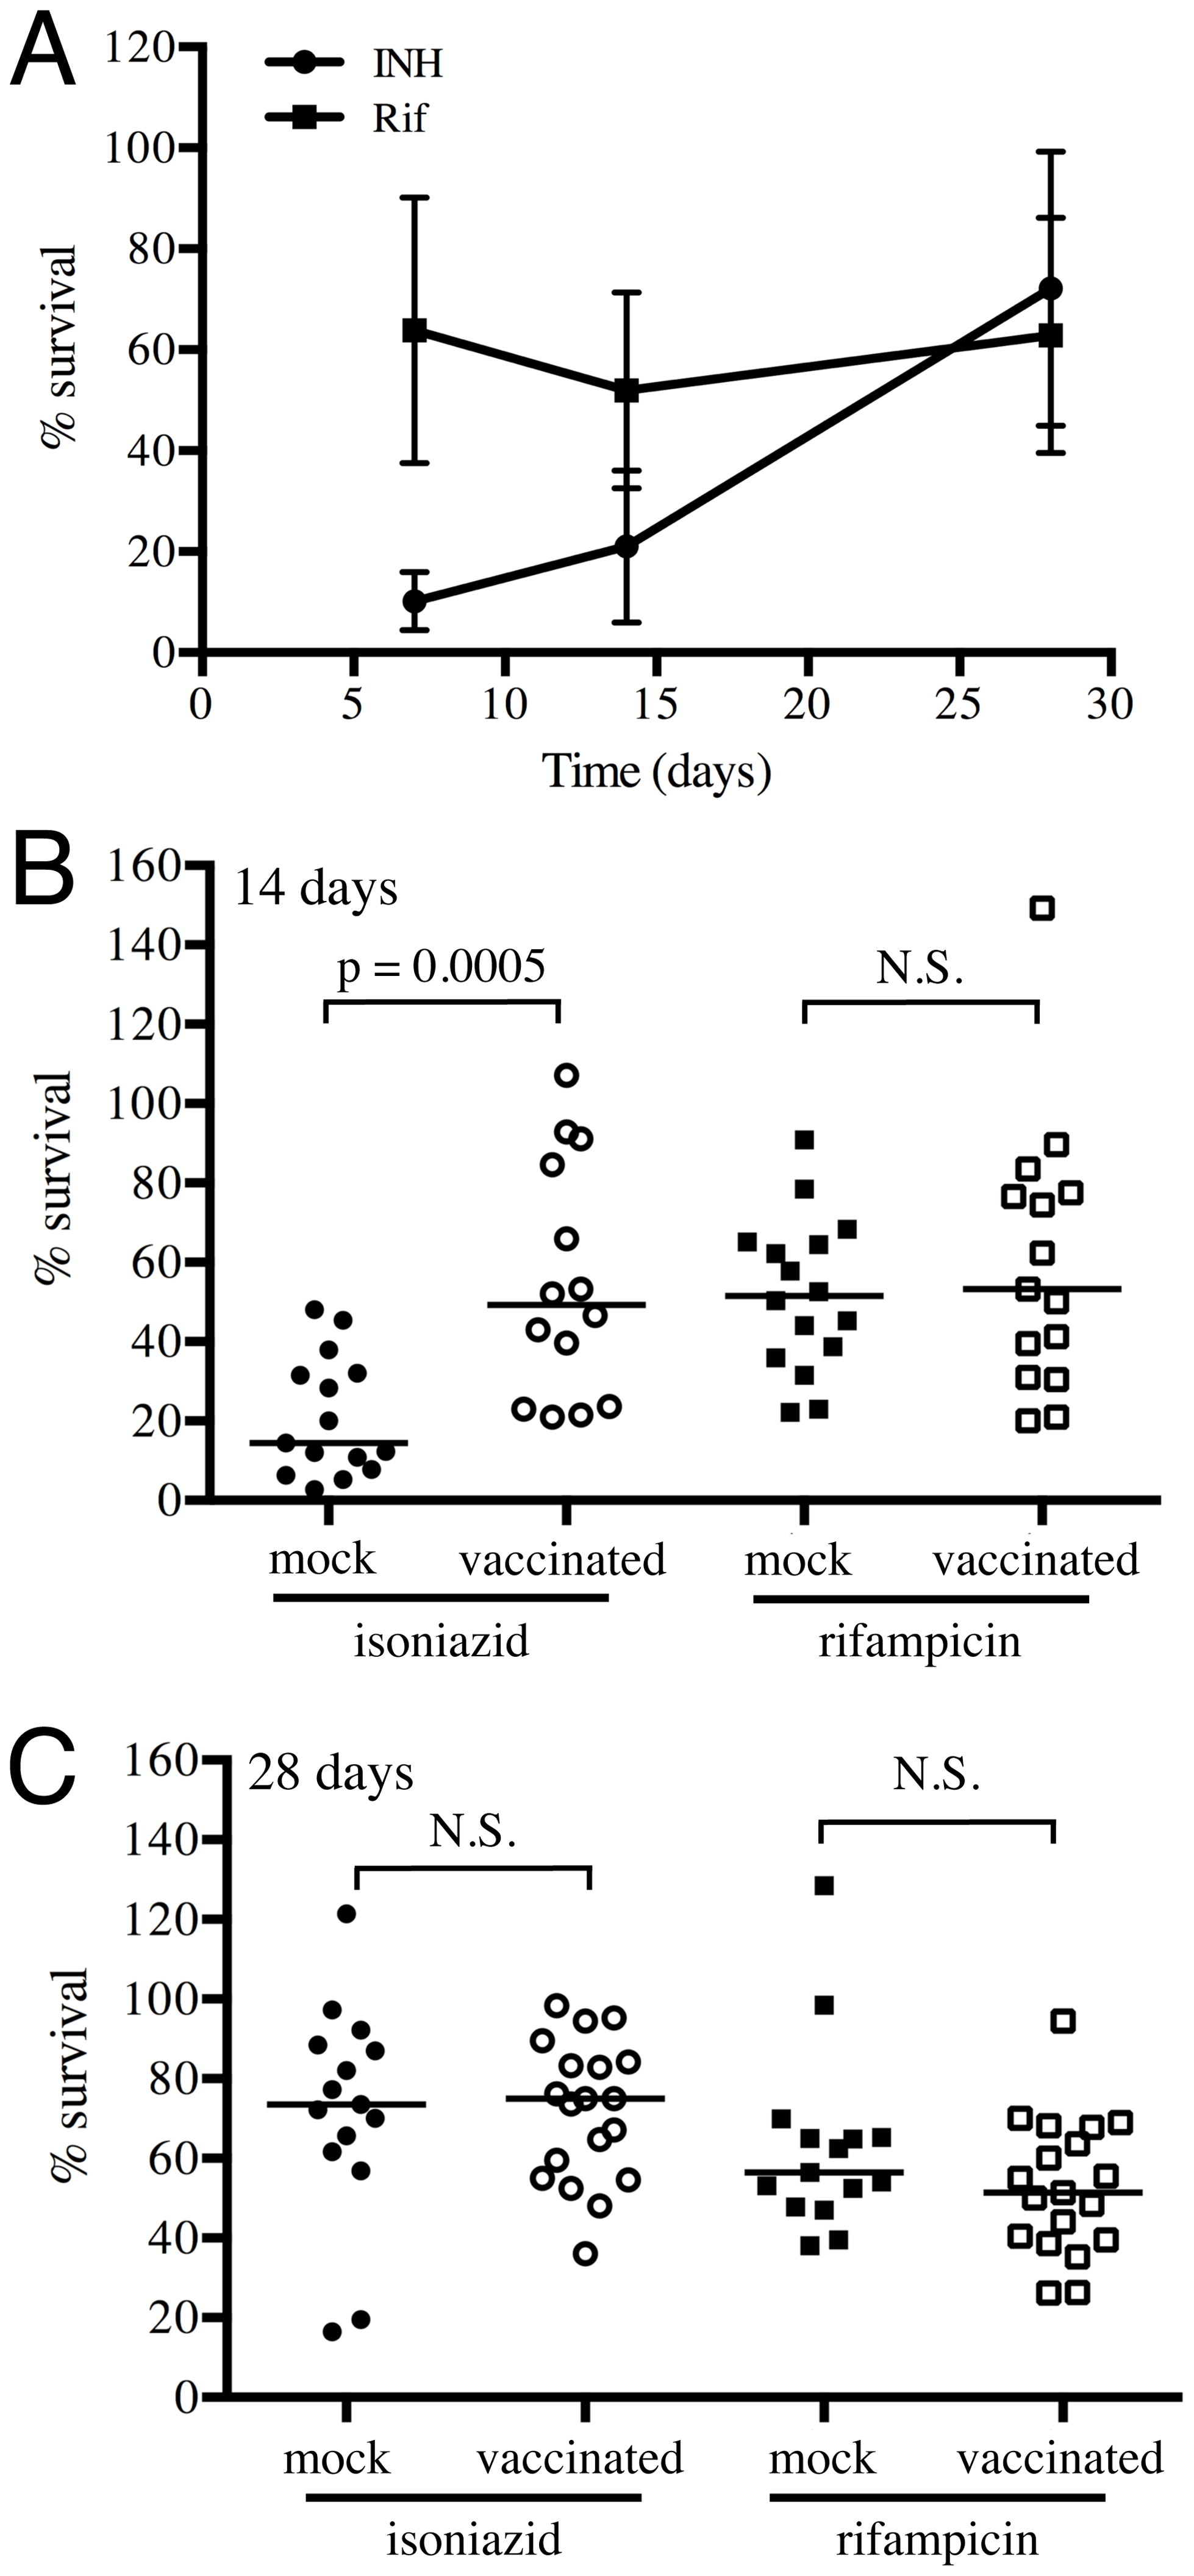 Mtb in vaccinated lungs display higher tolerance to isoniazid but not rifampicin.